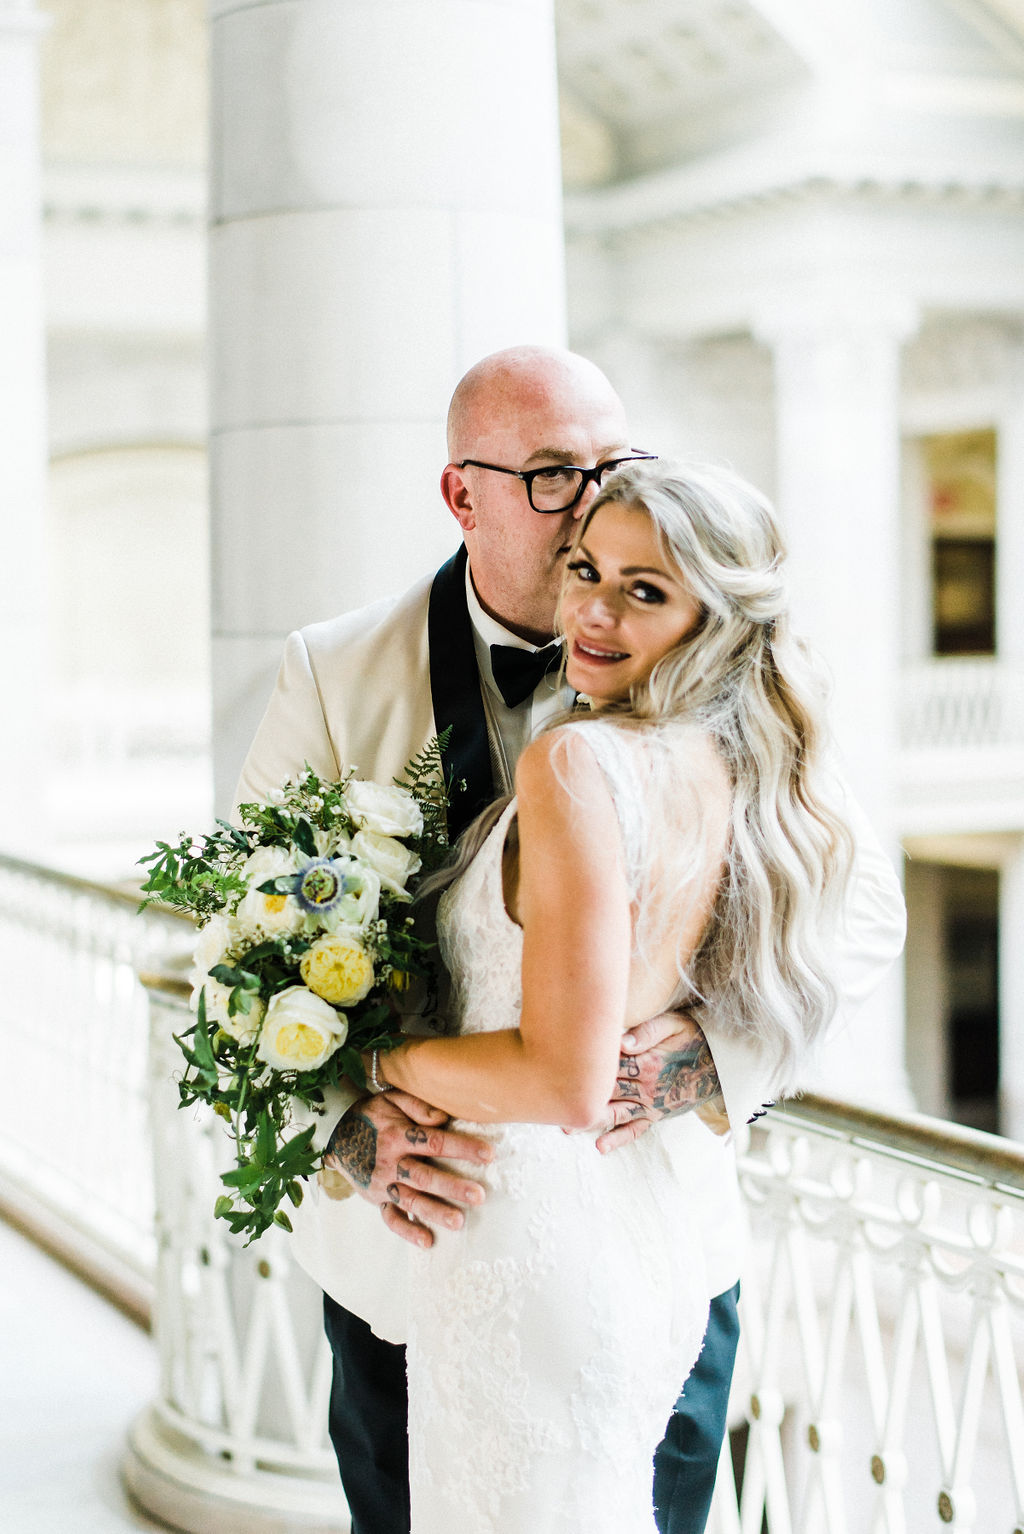 Melanie and Tyler Anderson Married at The Hartford City Hall - Pearl Weddings & Events